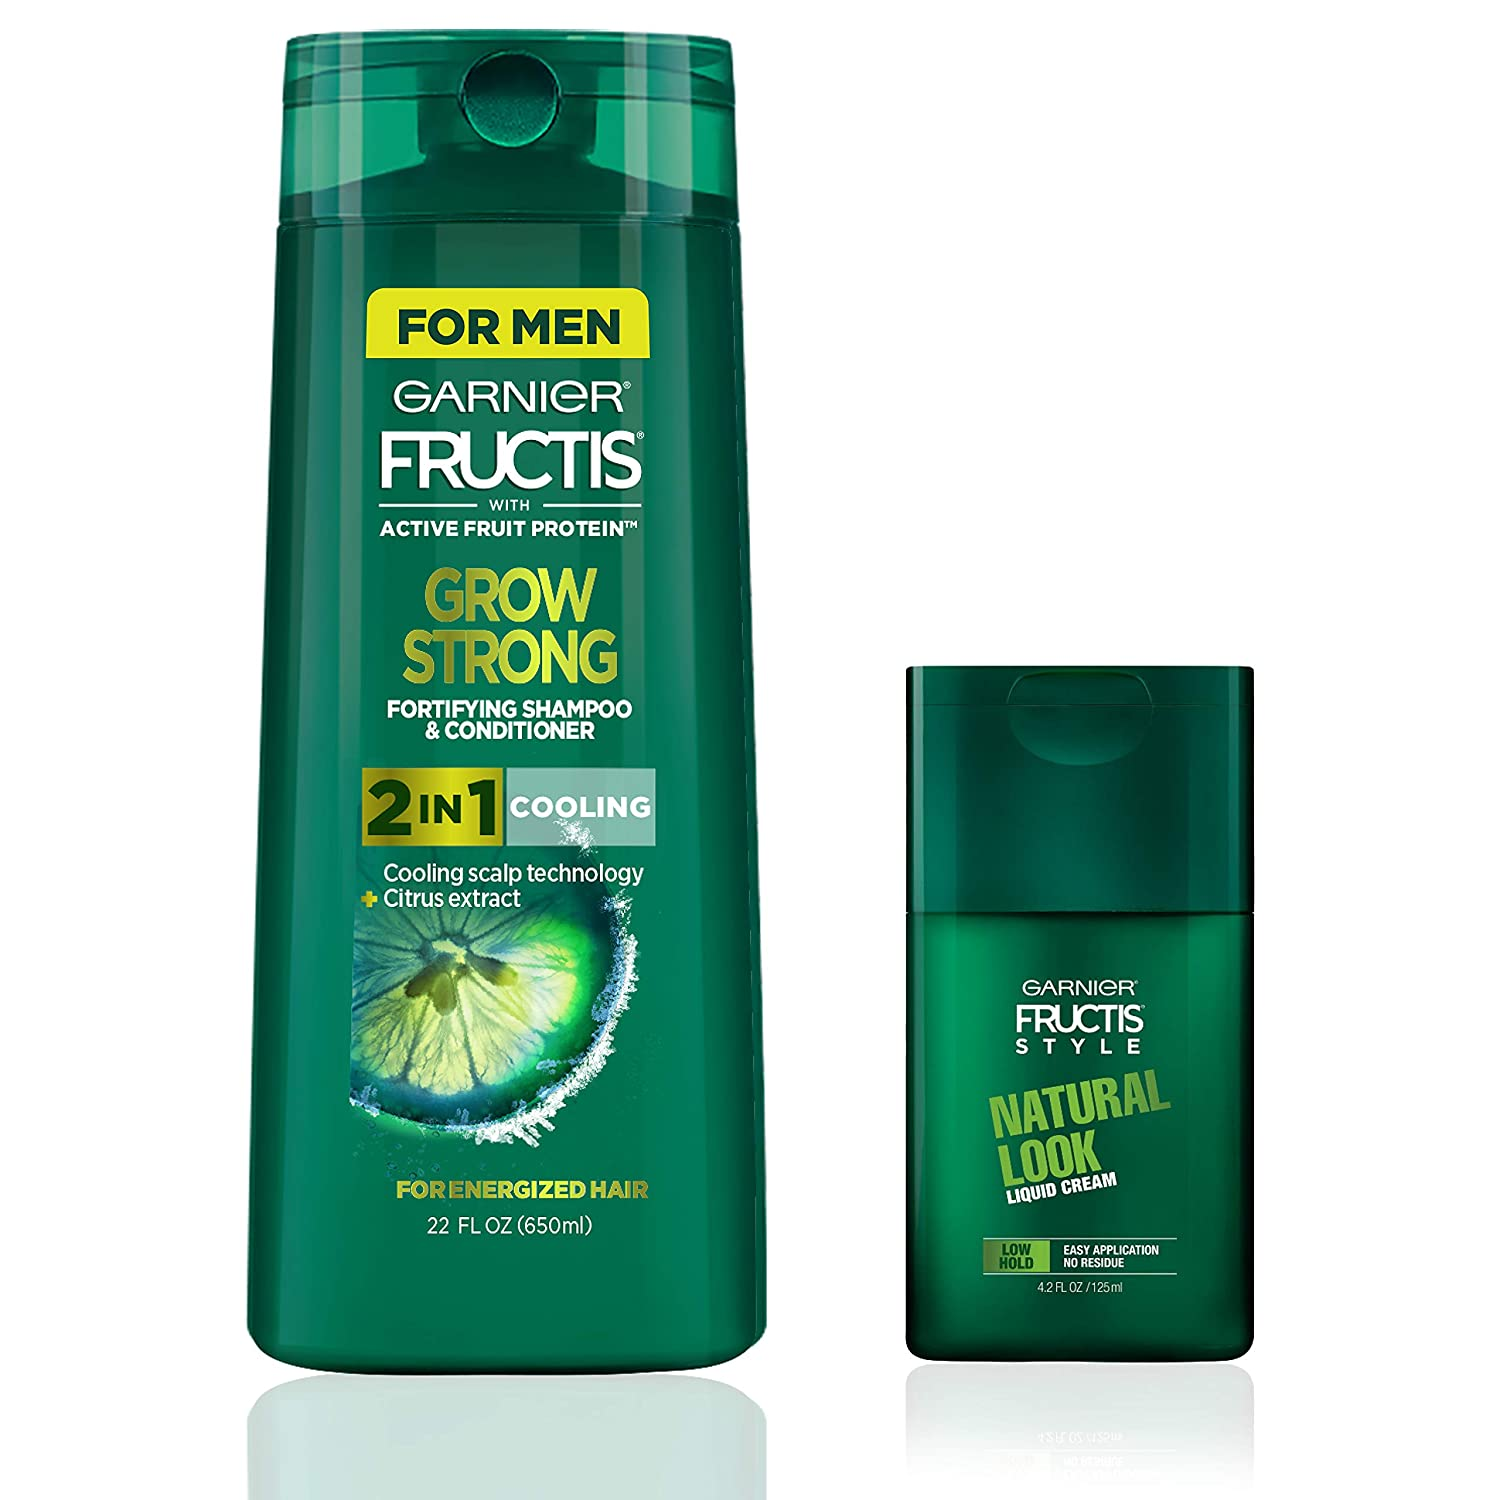 Garnier Hair Care Fructis Men's Grow Strong Cooling 2N1 Shampoo and Conditioner with Cooling Scalp Technology, Natural Look Liquid Hair Cream for Men, Low Hold with No Wax, 1 Kit